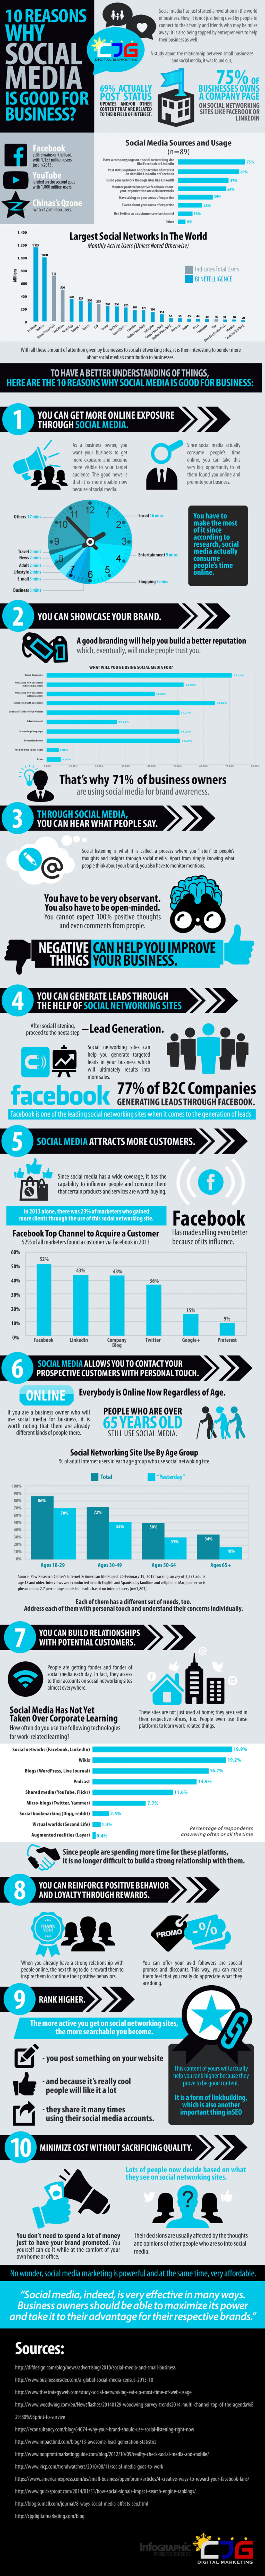 10 Reasons Why Social Media is Good for Business? (Infographic) Infographic